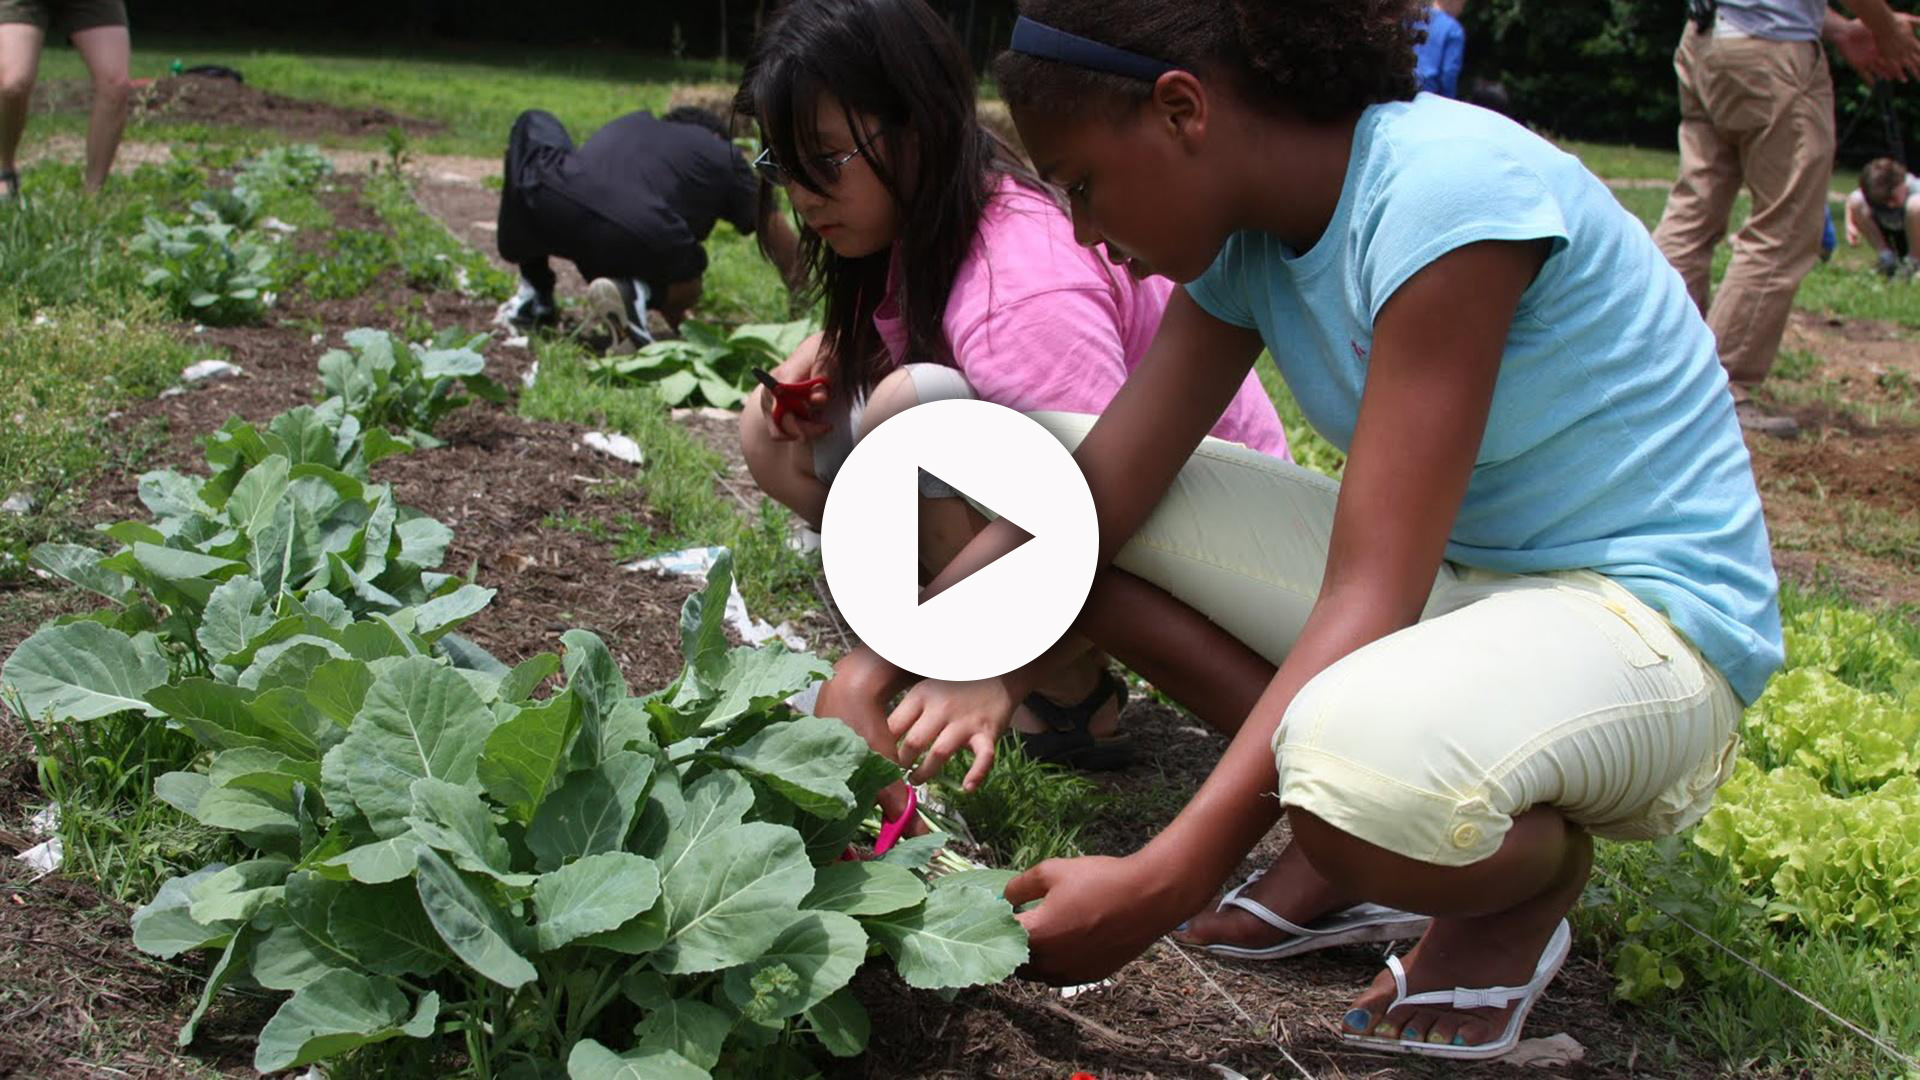 Several kids squatting down working with plants in a garden.